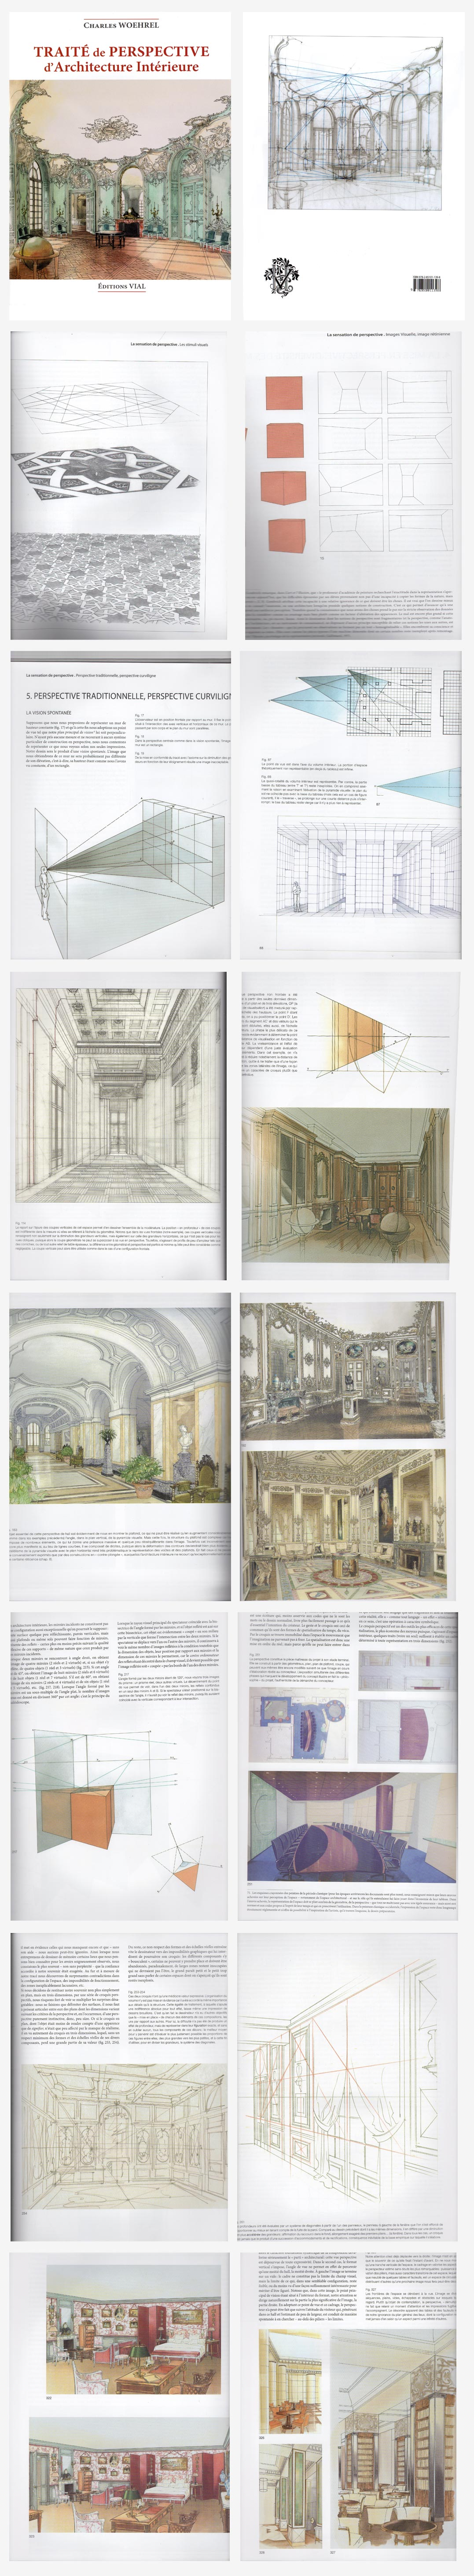 Perspective study of Interiors